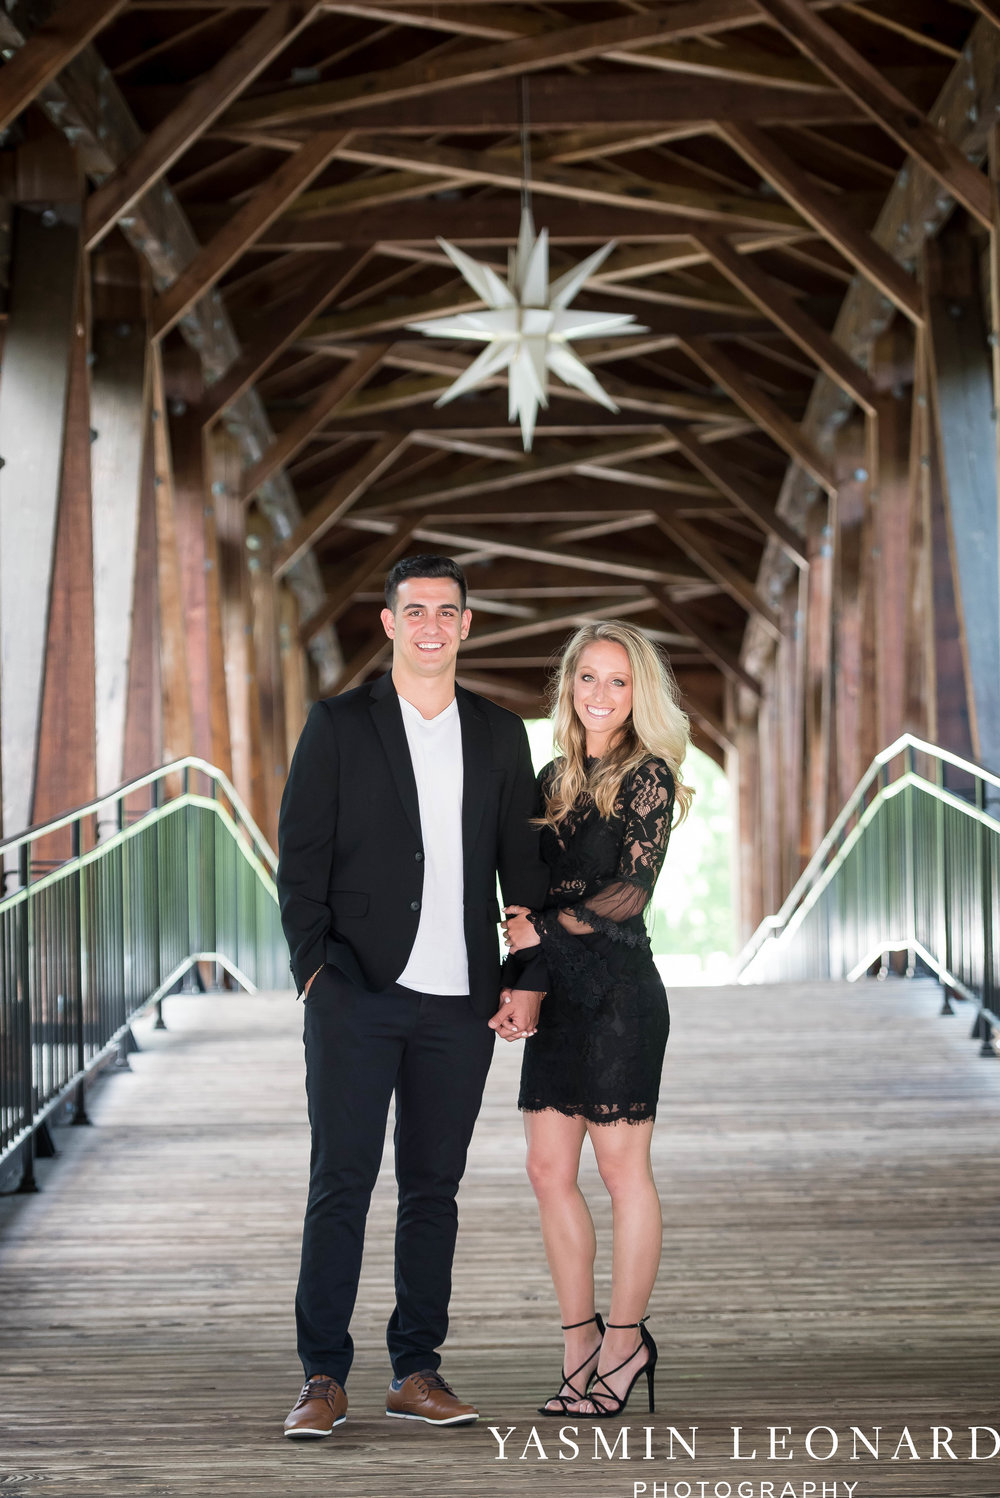 Downtown Winston Salem Engagement Session - NC Engaged - NC Weddings - Winston Salem Weddings - Yasmin Leonard Photography-40.jpg